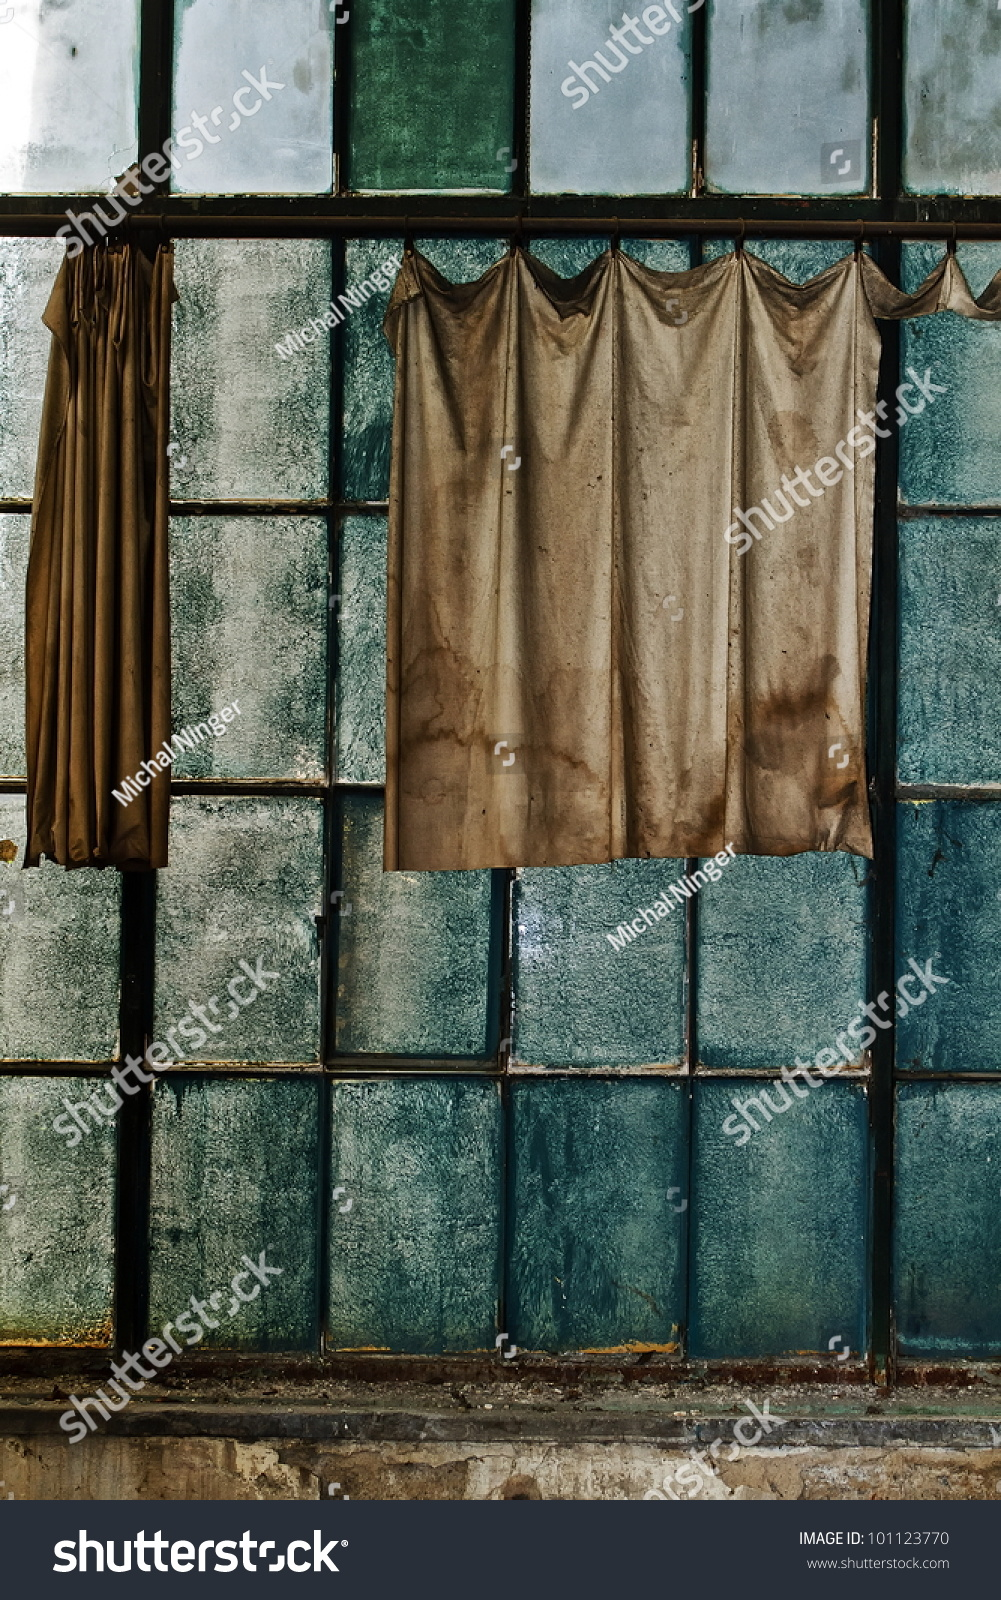 dirty curtains in the windows at a workshop hall